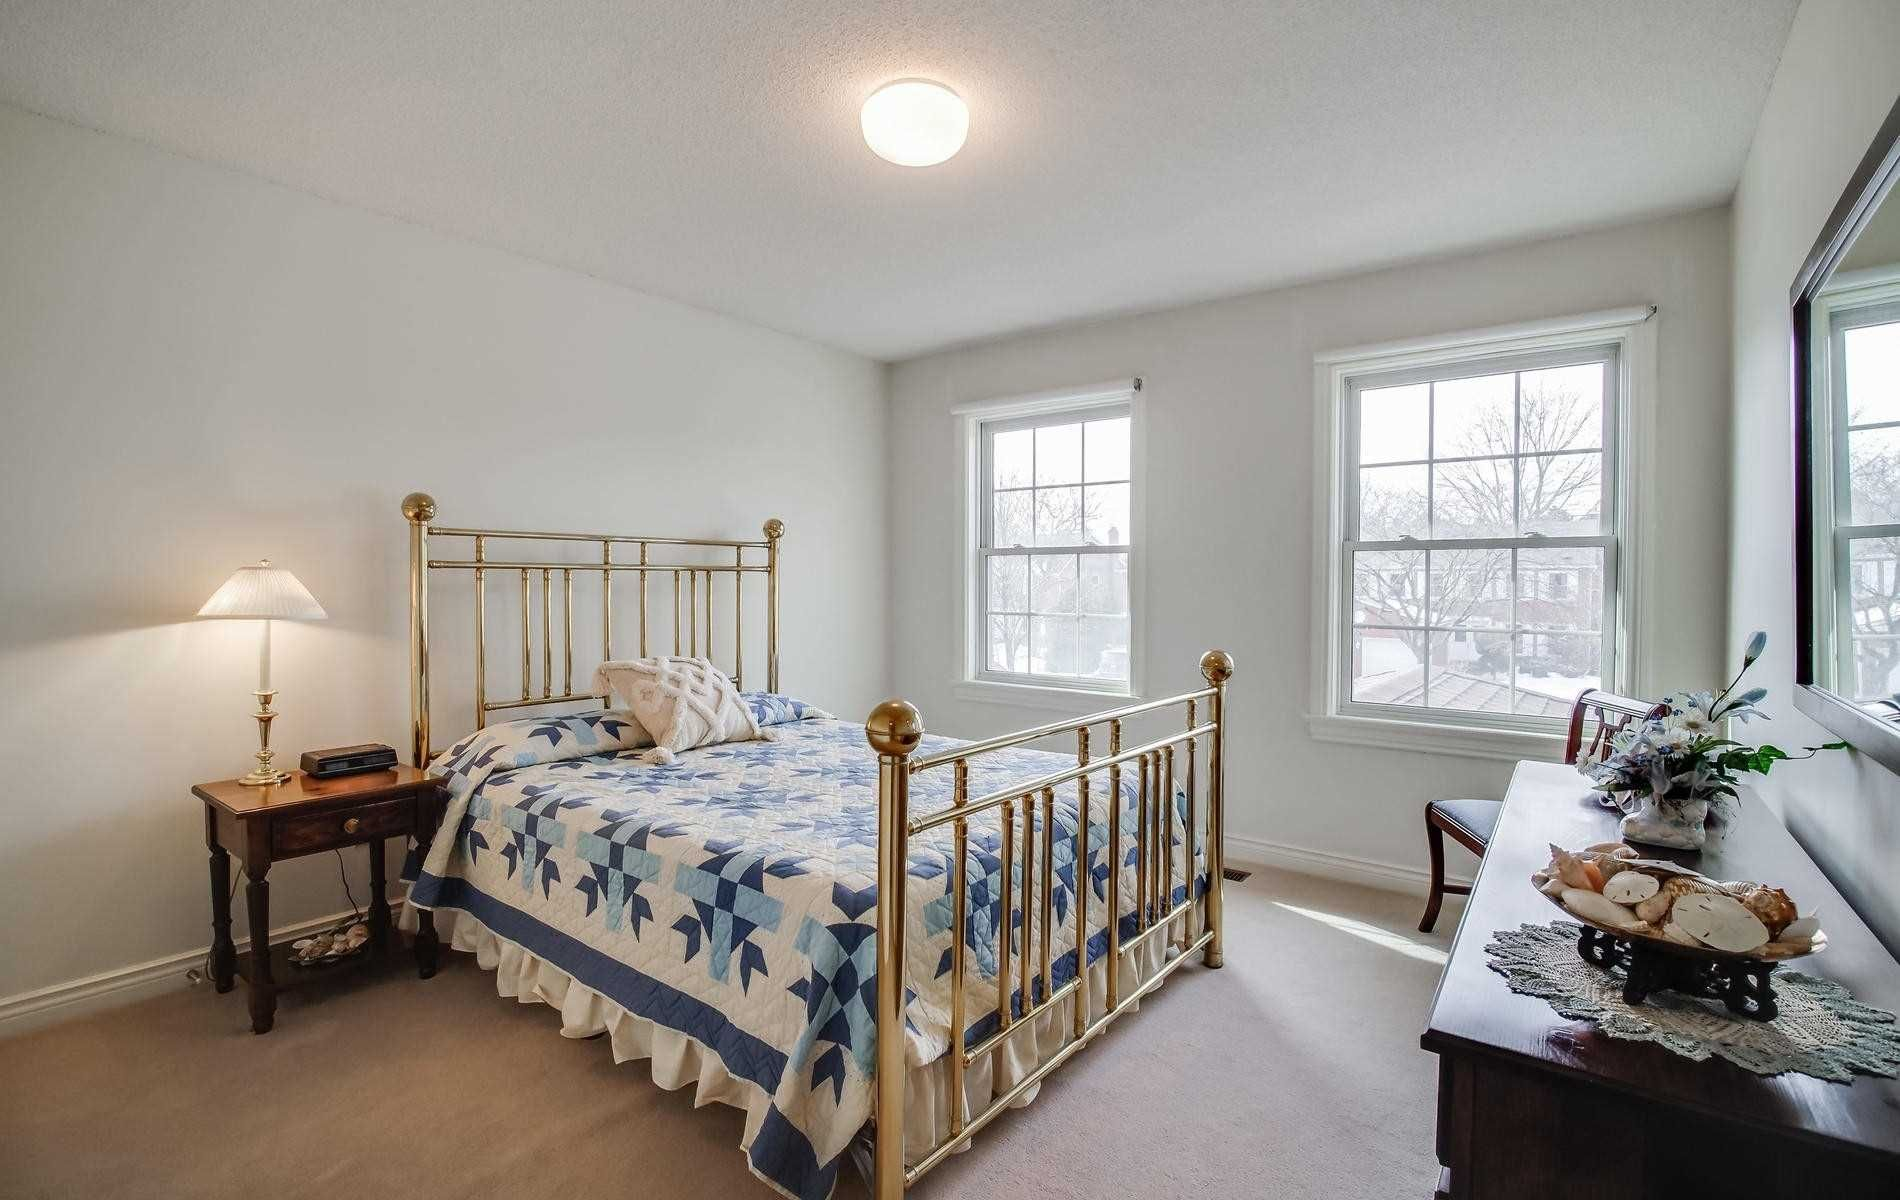 Photo 14: Photos: 498 Hidden Trail in Toronto: Westminster-Branson House (2-Storey) for sale (Toronto C07)  : MLS®# C4709173